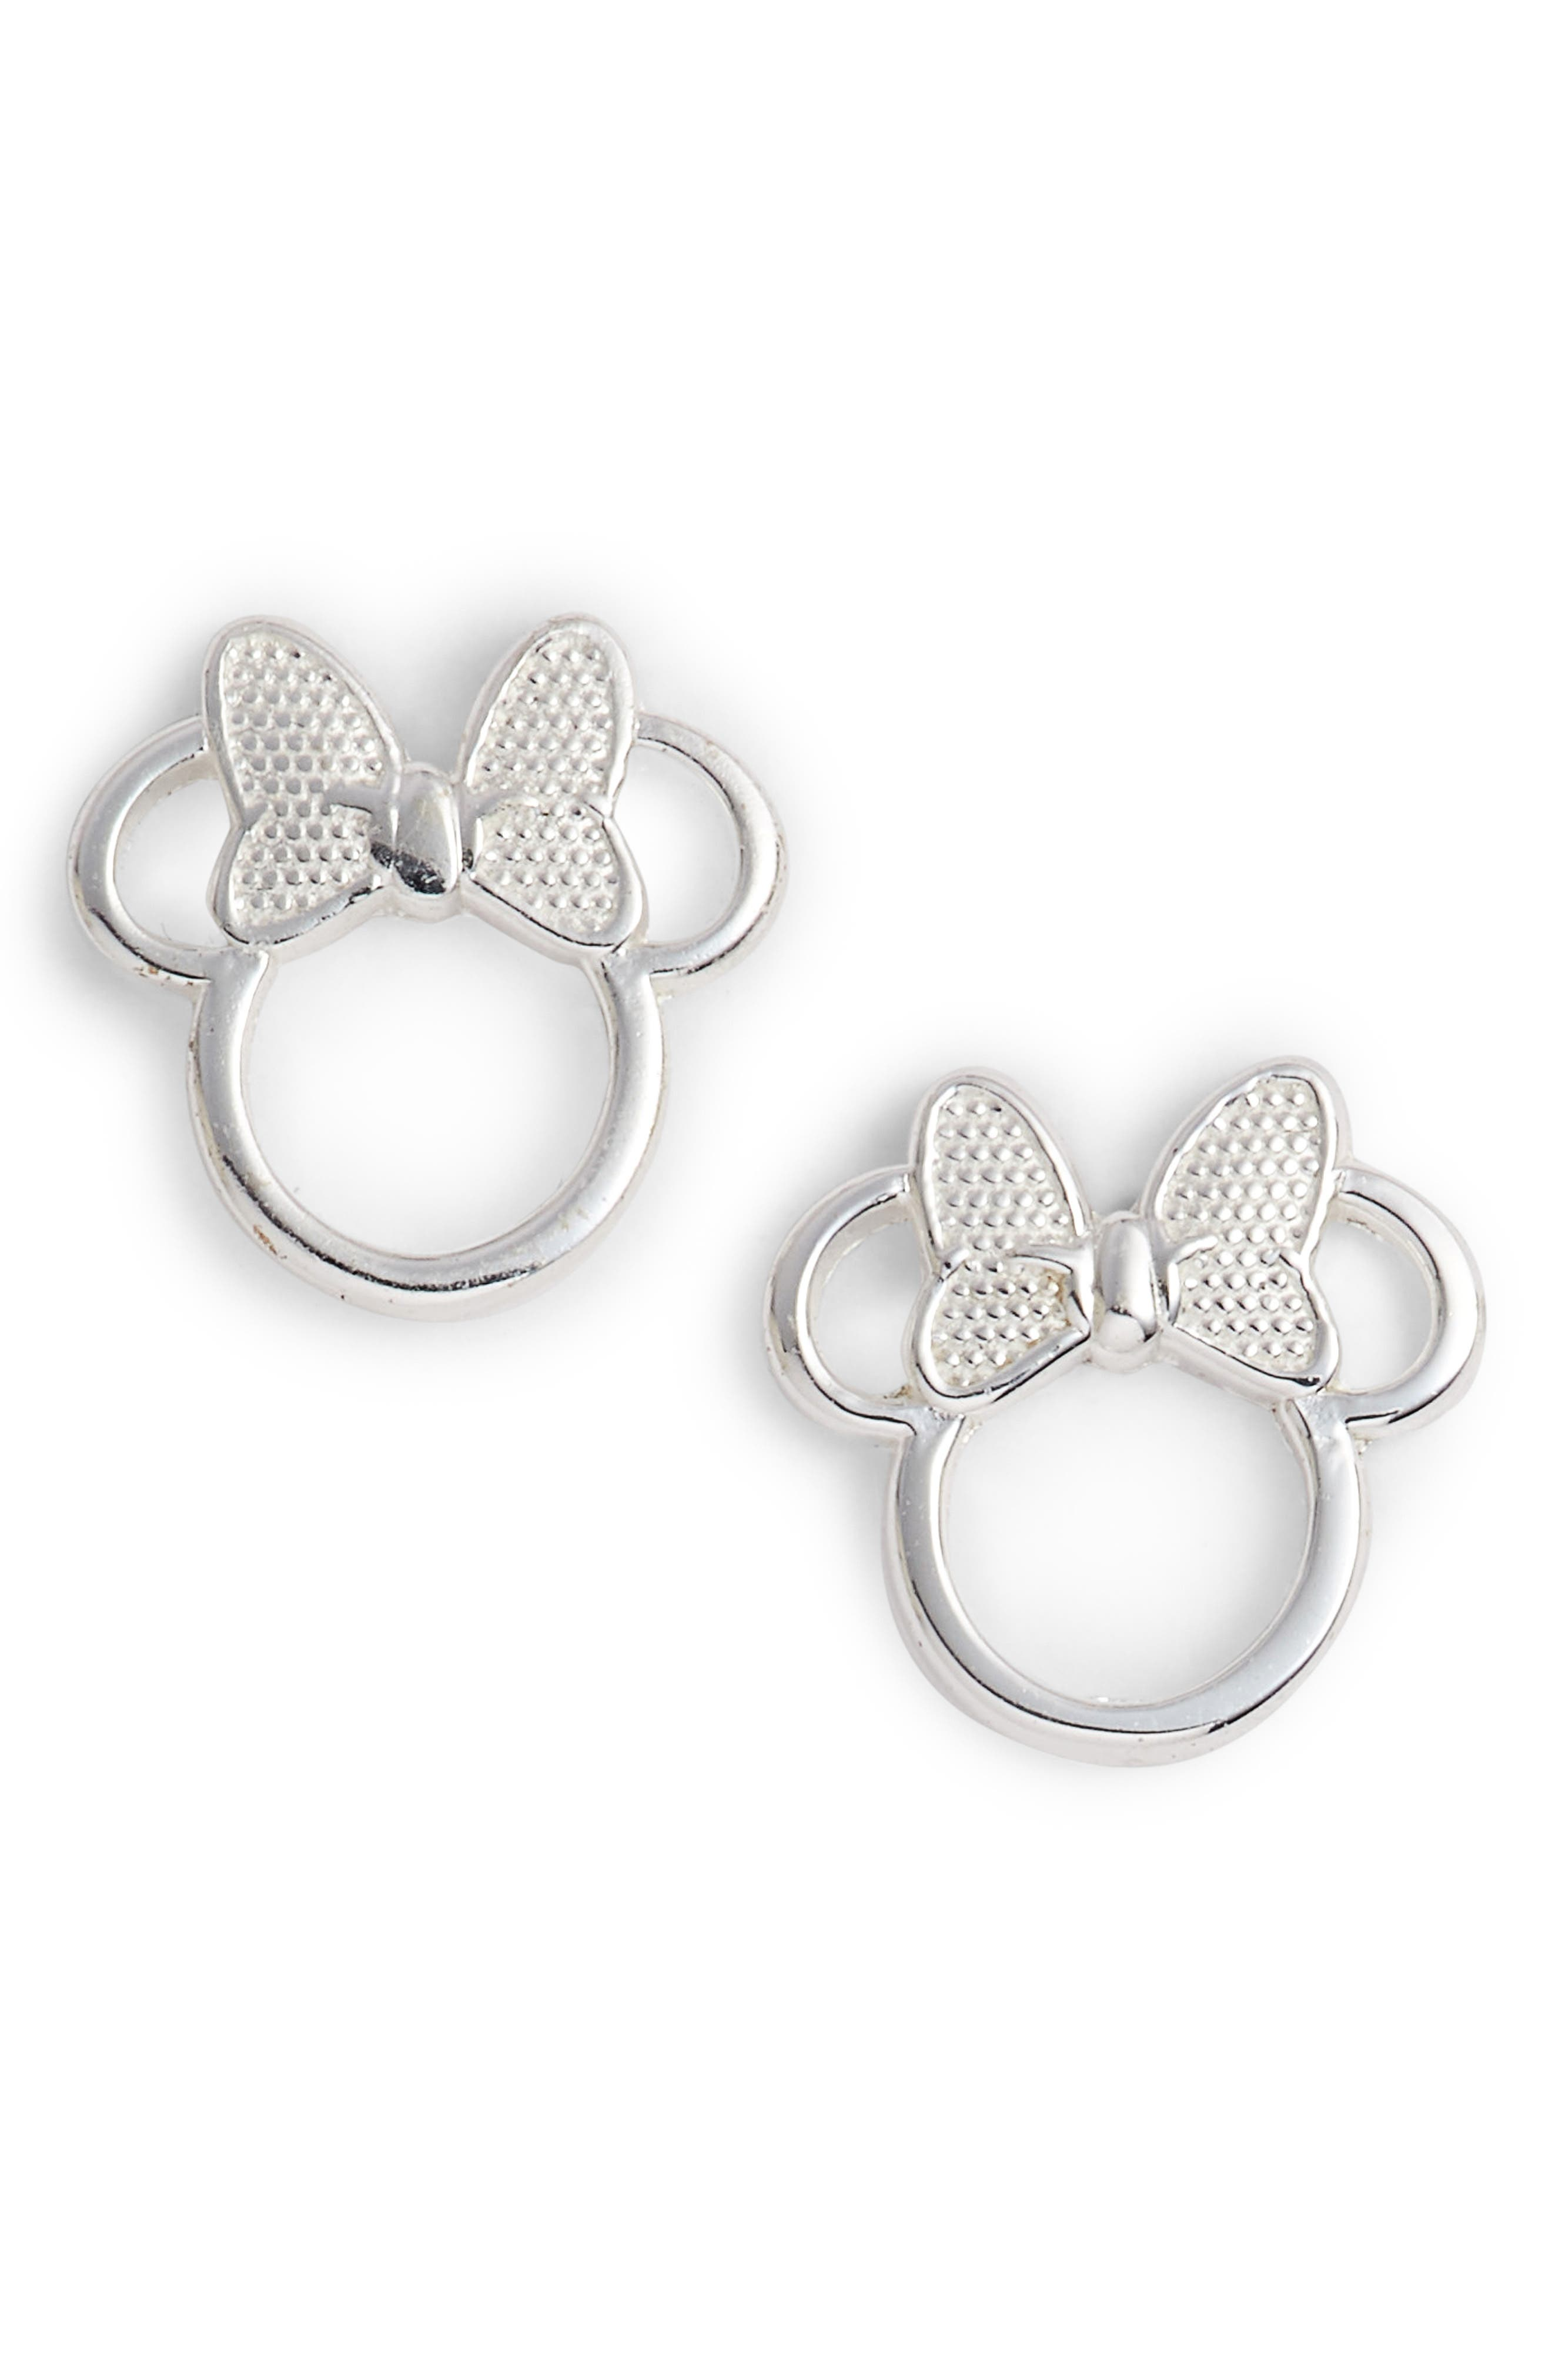 Minnie Mouse Stud Earrings,                         Main,                         color, 040